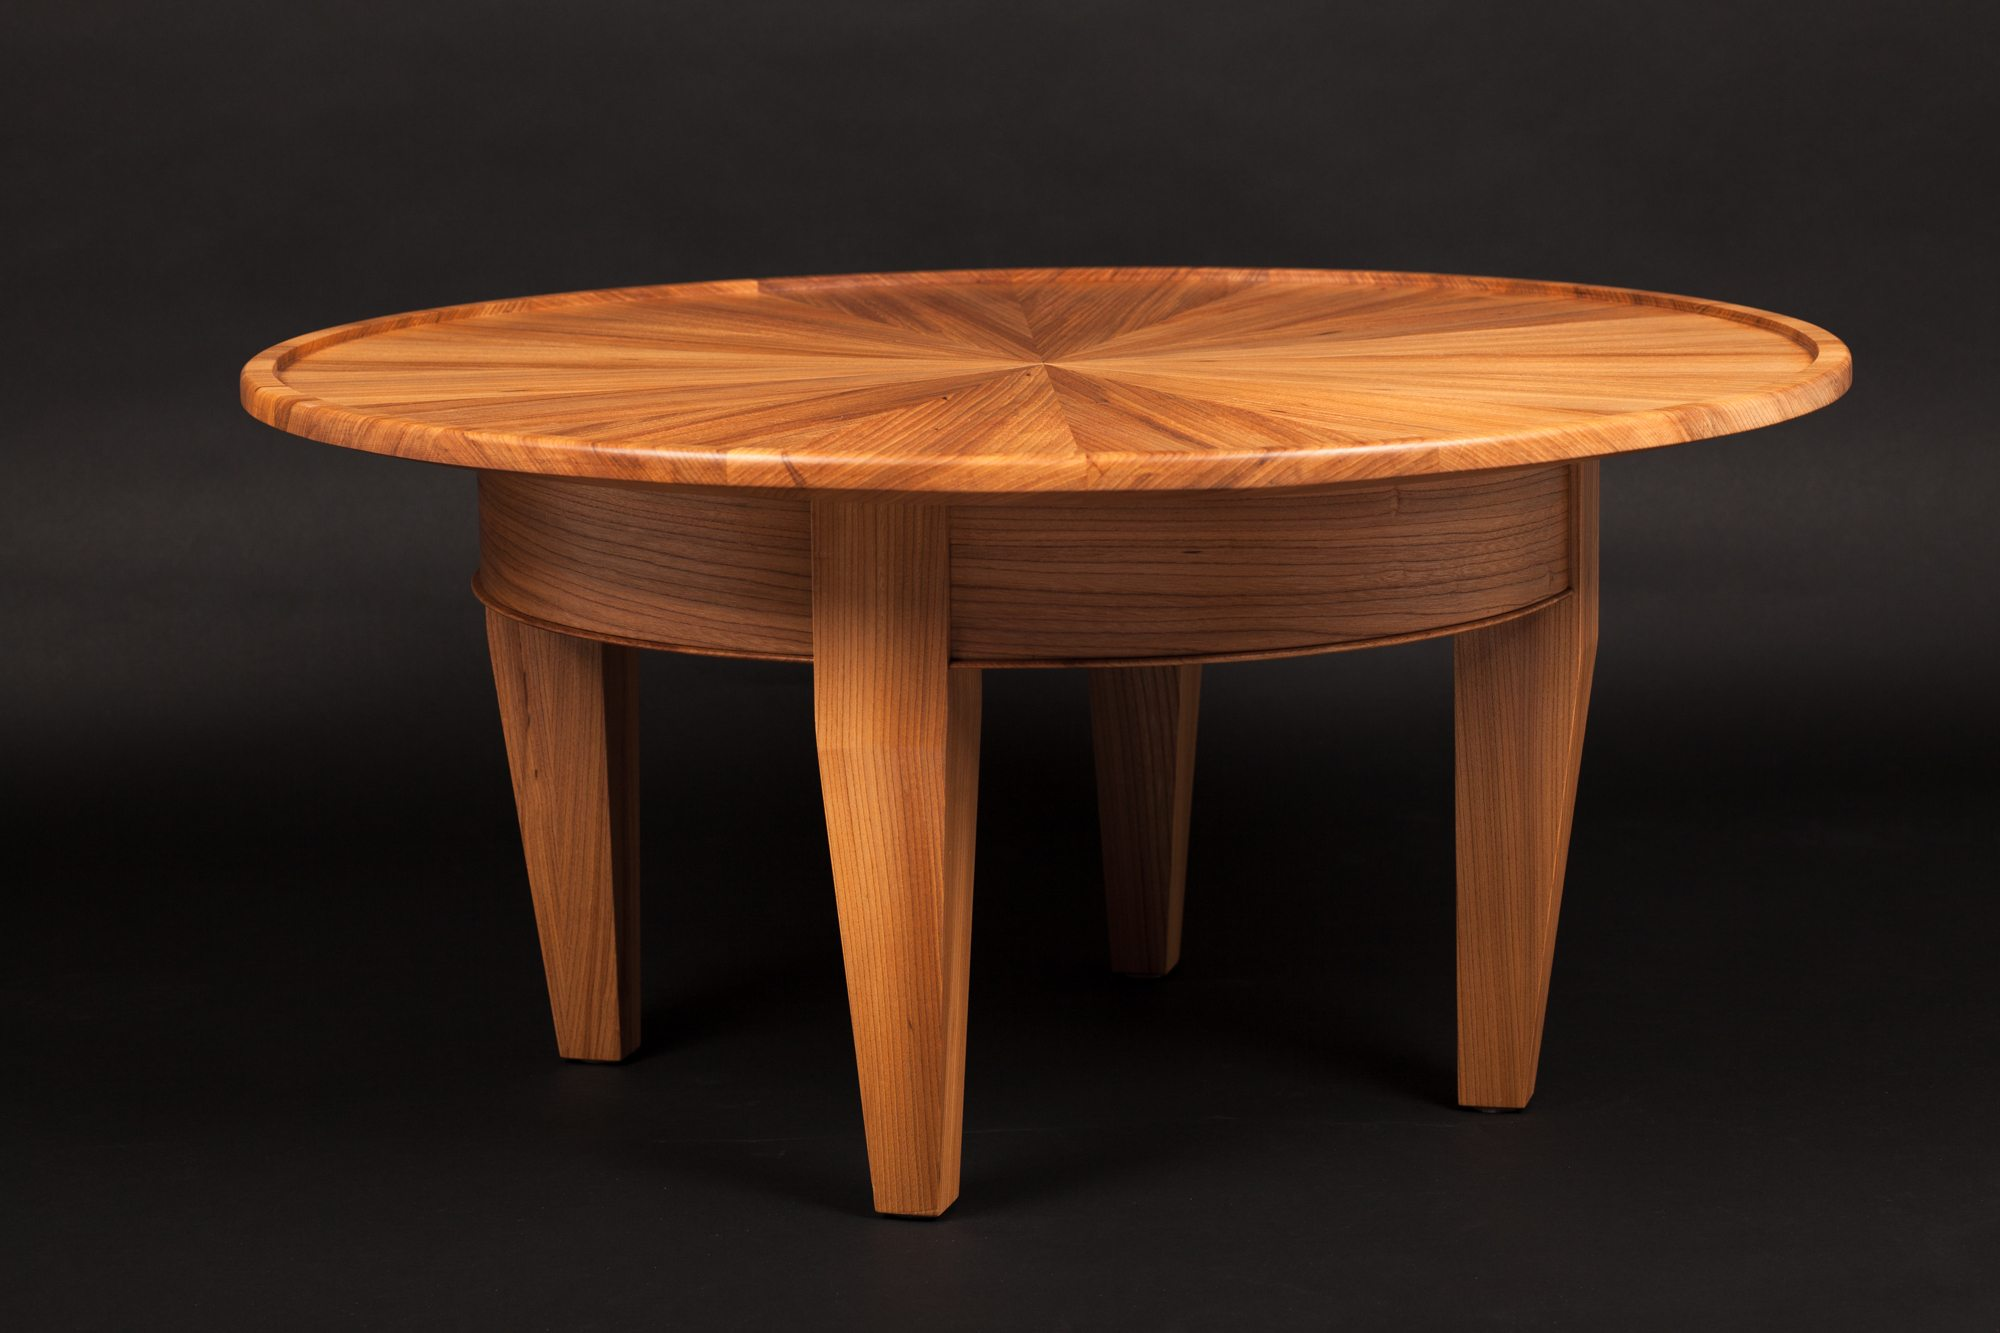 Elm Wood | Handmade wood furniture | STUDIORossi